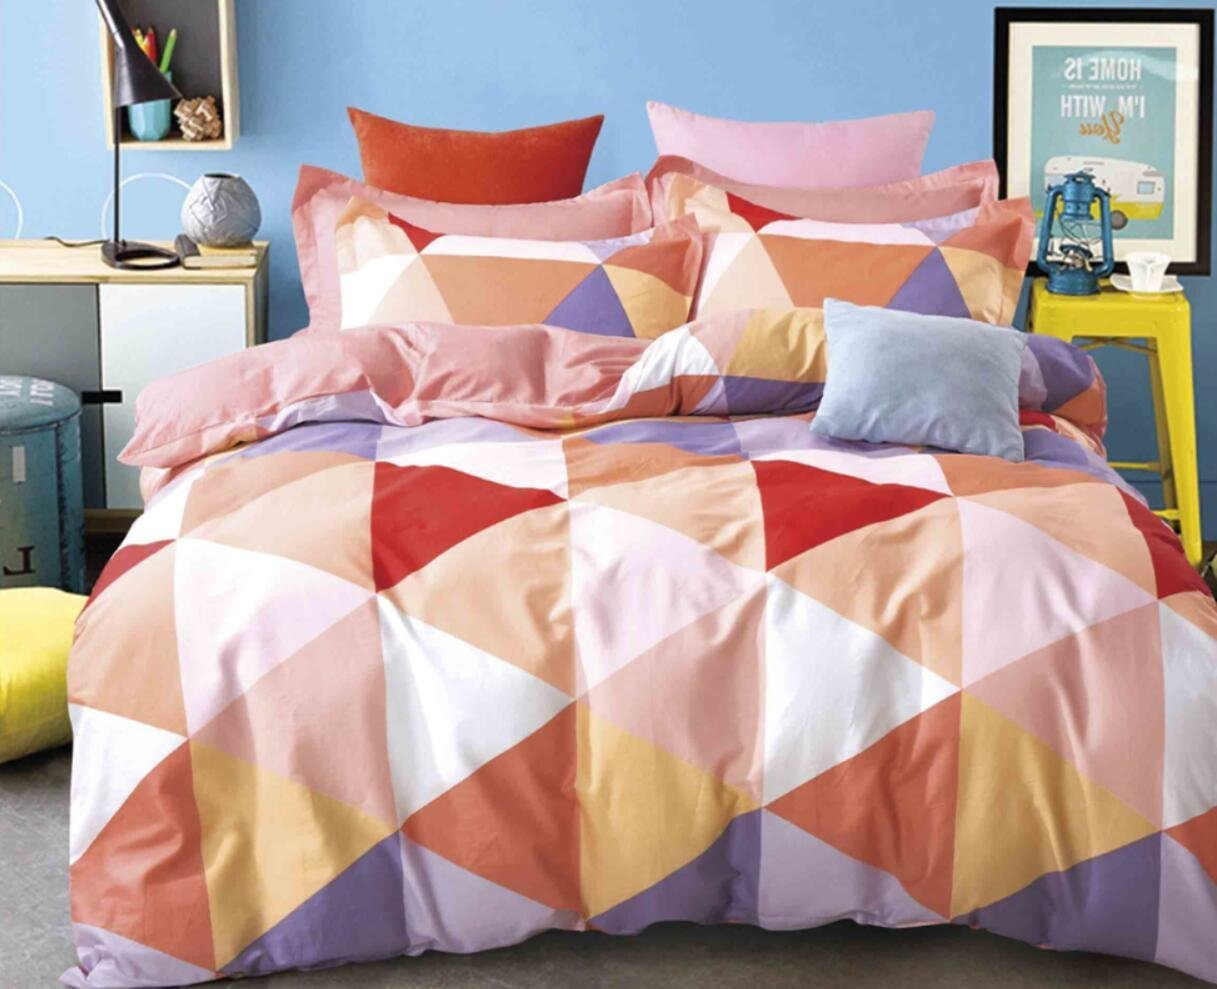 Minimal Style Geometric Shapes Duvet Quilt Cover Scandinavian Midcentury Modern Geo Print 100-percent Cotton Bedding Set Soft Casual Retro Mosaic Orange Blush Taupe Full Queen Size (Queen, Blush)